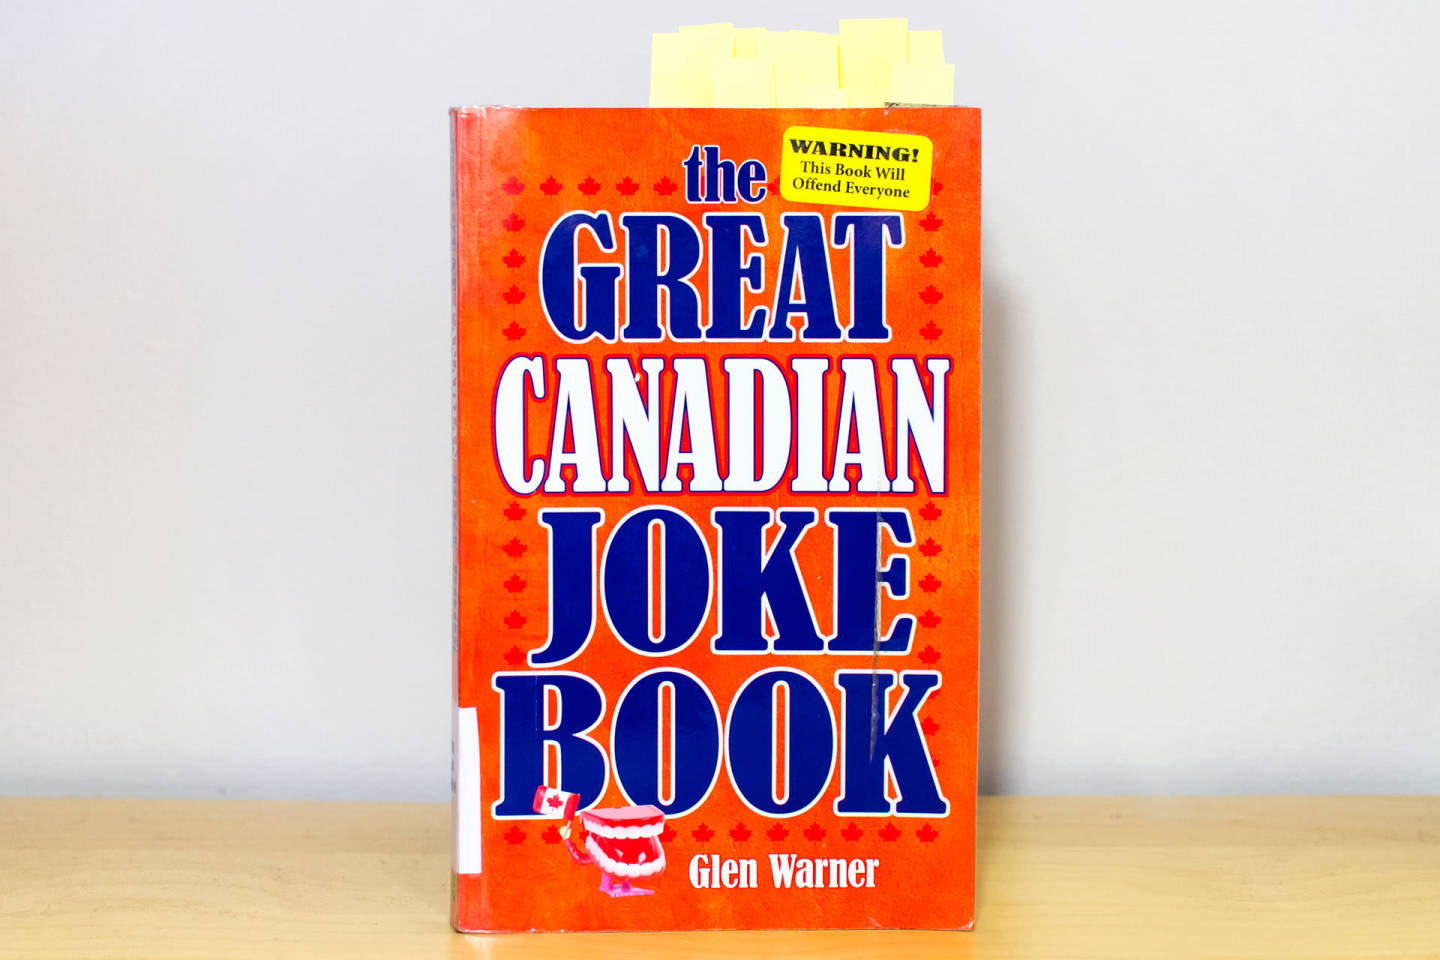 The Great Canadian Joke Book by Glen Warner